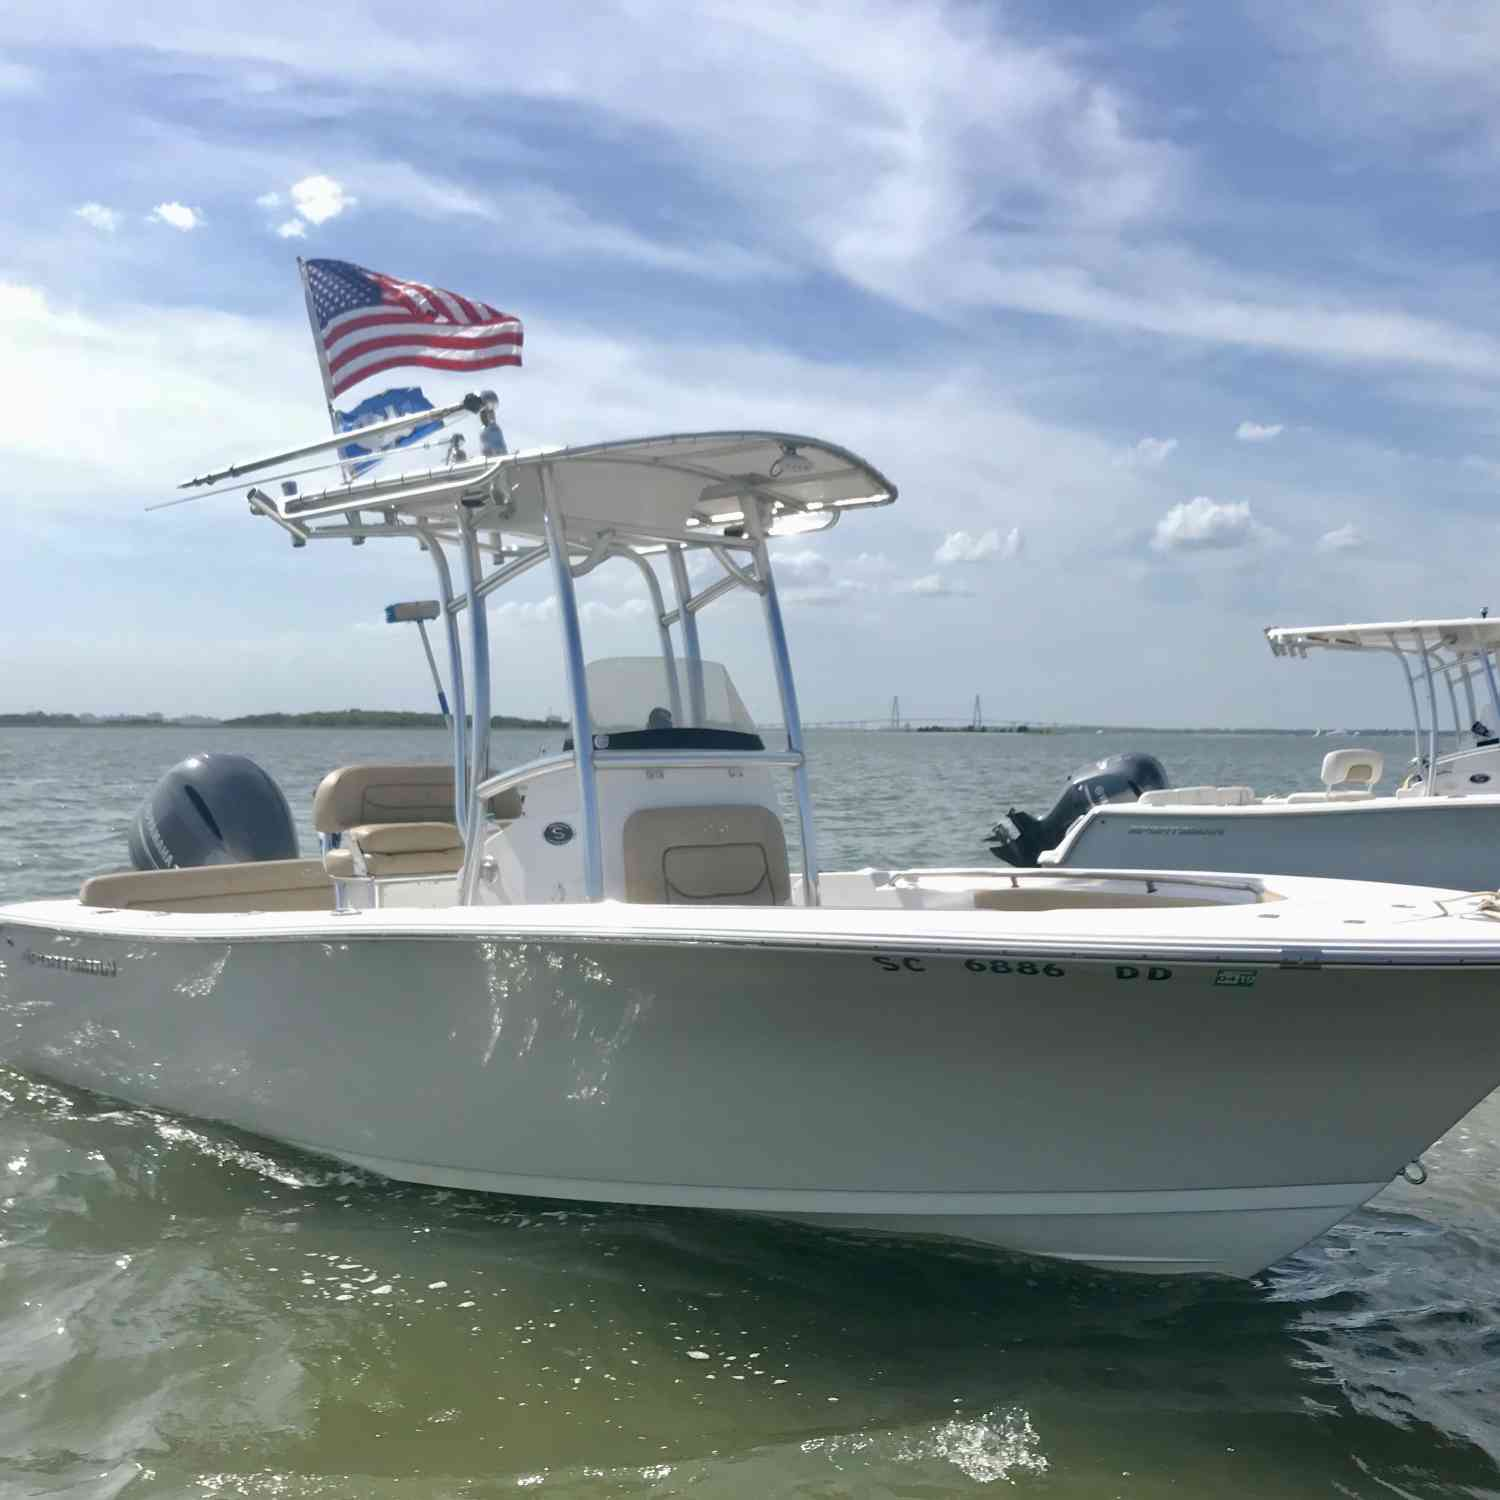 Title: Sportsman Heritage x2 - On board their Sportsman Heritage 211 Center Console - Location: Morris Island (Charleston, SC). Participating in the Photo Contest #SportsmanJuly2018